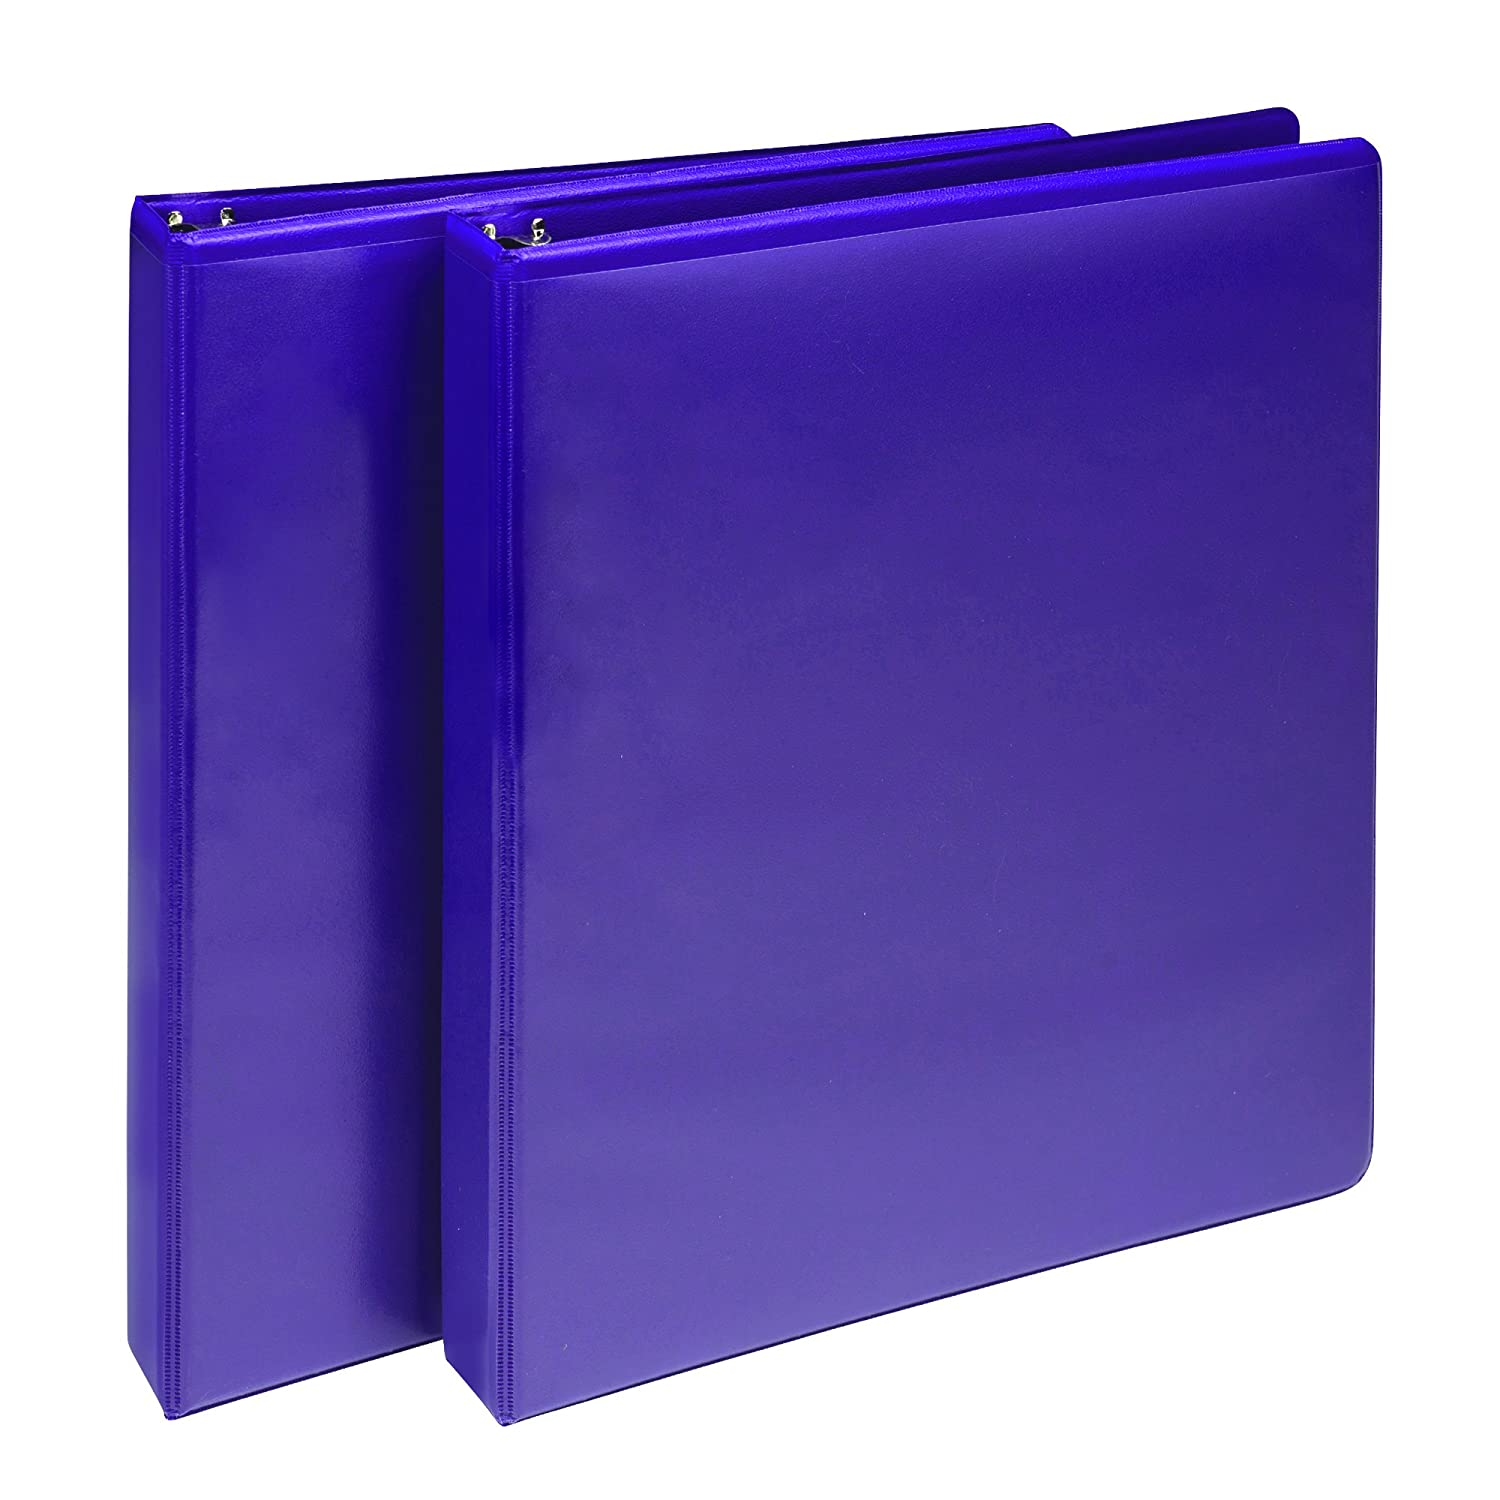 Samsill U86377 Antimicrobial Presentation View Binders, 1-Inch Capacity, Turquoise, 2-Pack